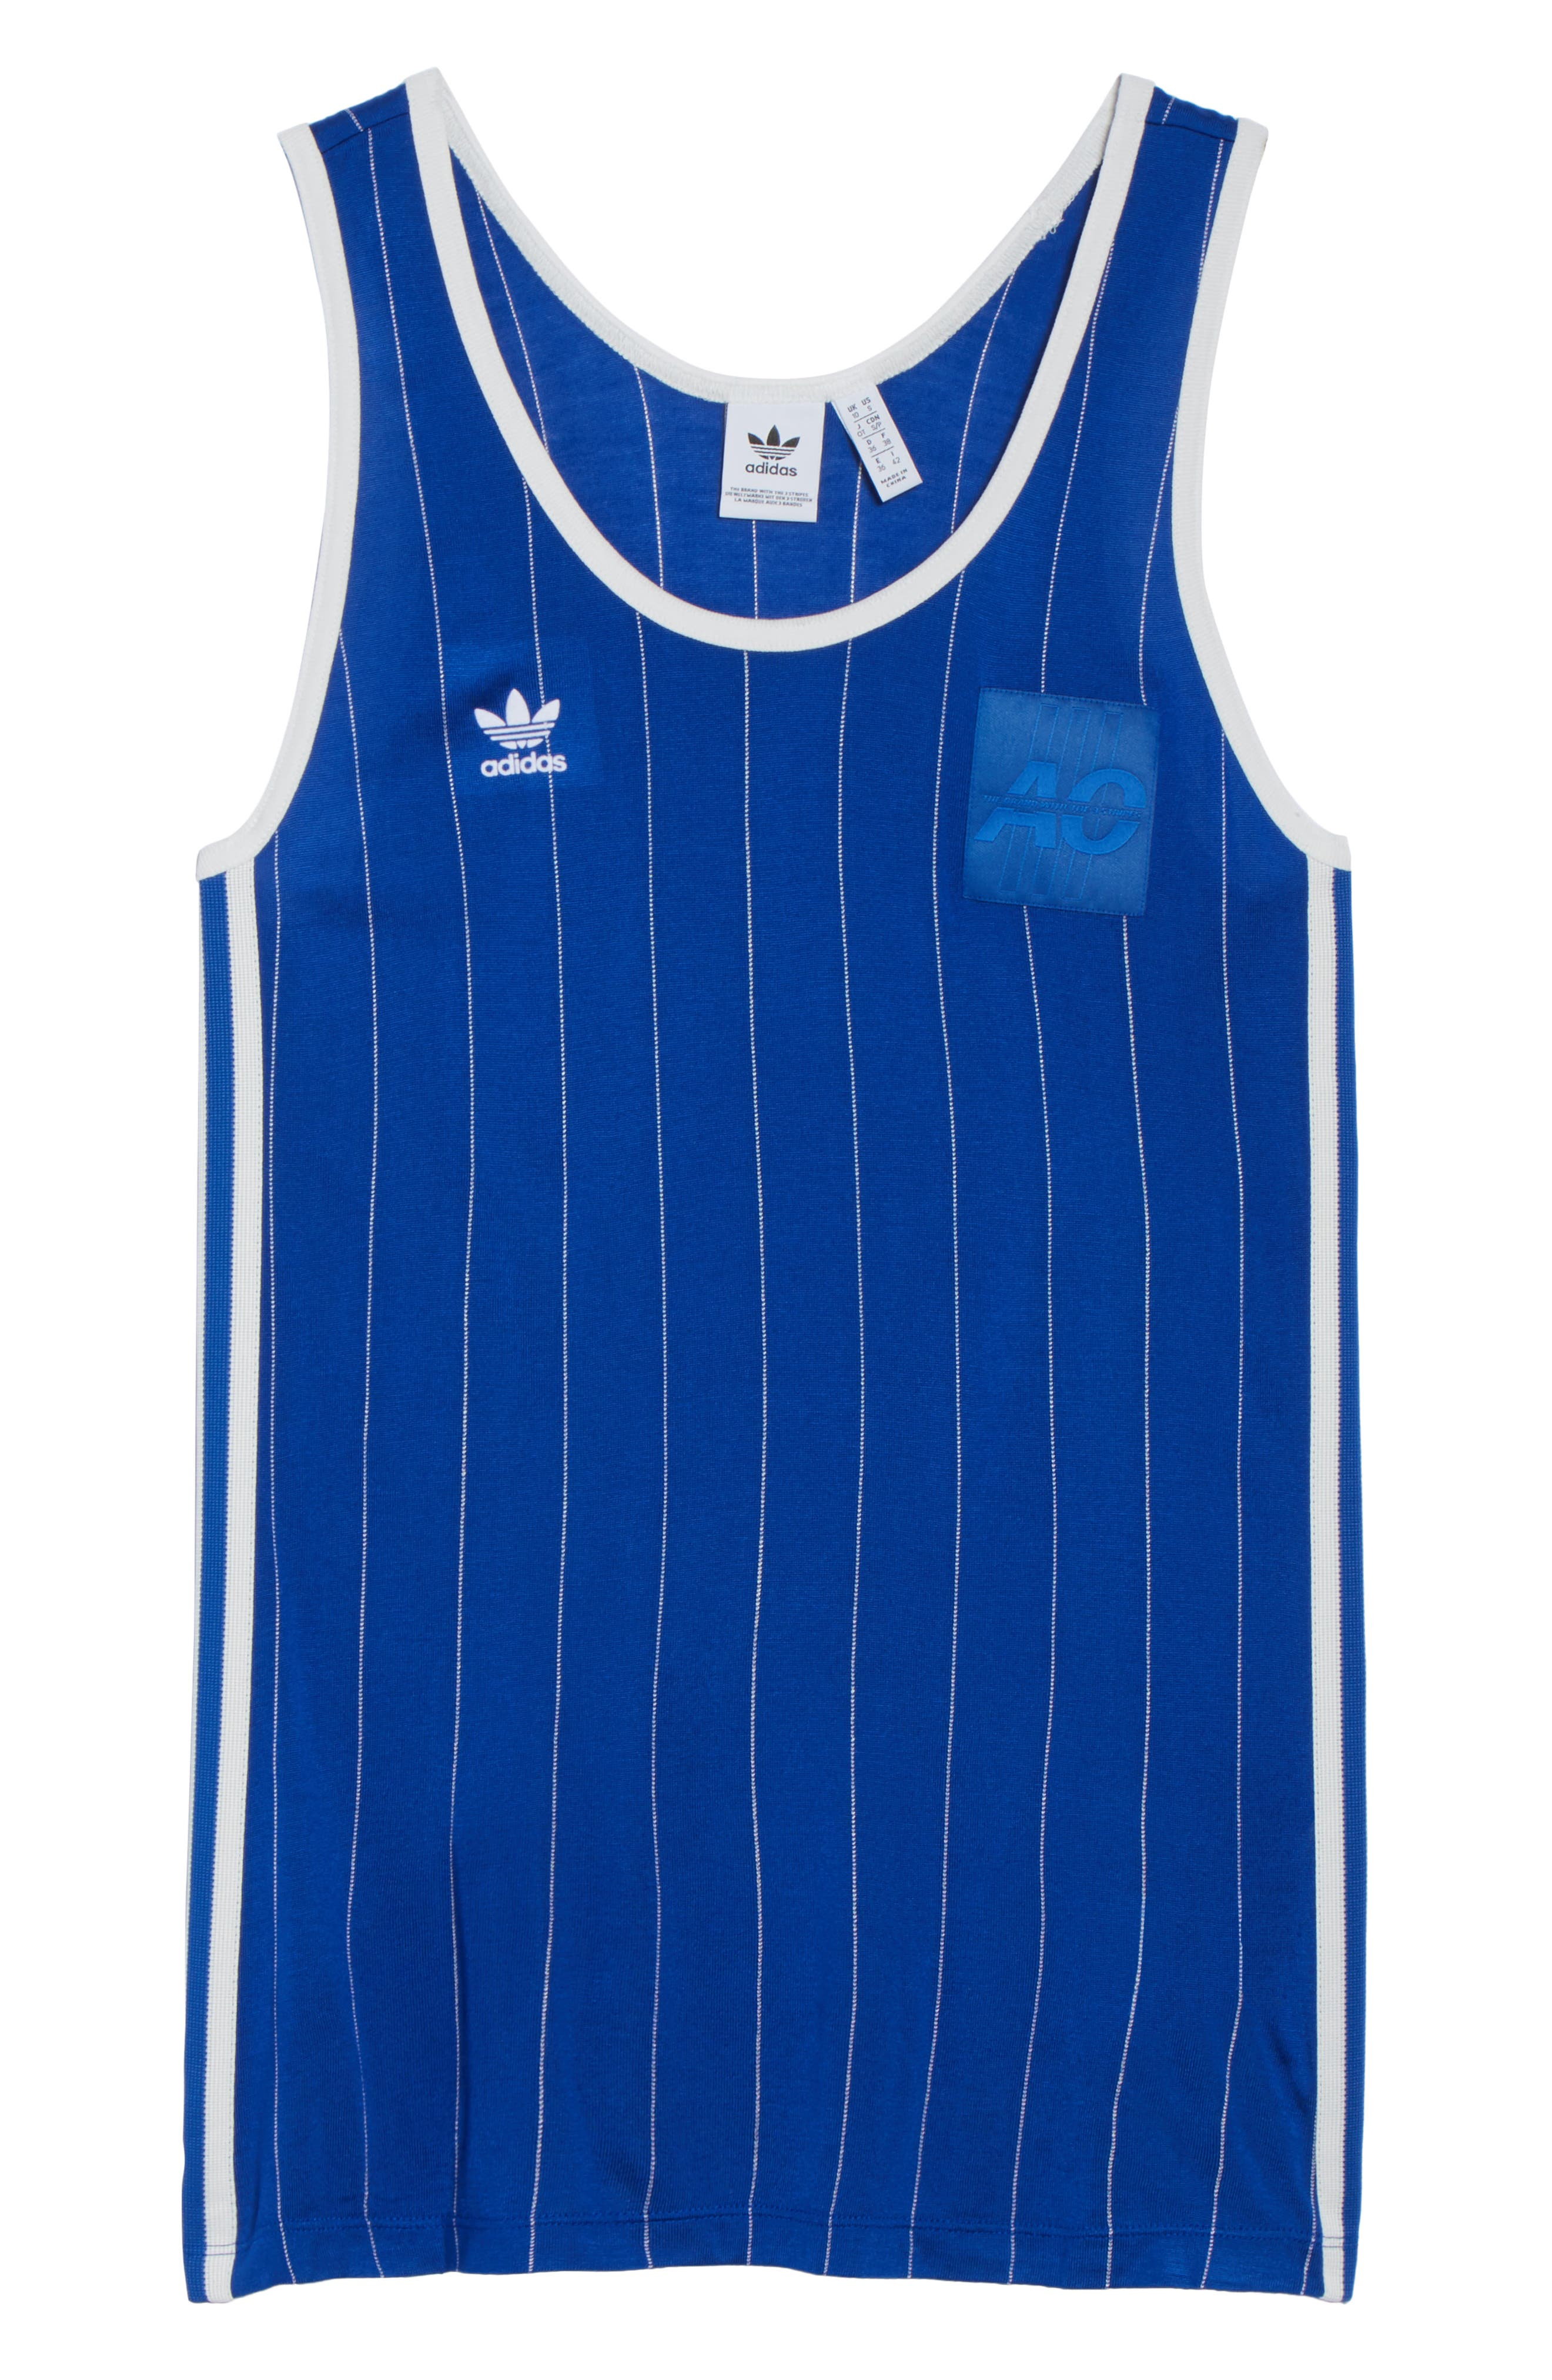 Originals Fashion League Retro Tank,                             Alternate thumbnail 6, color,                             Collegiate Royal/ White